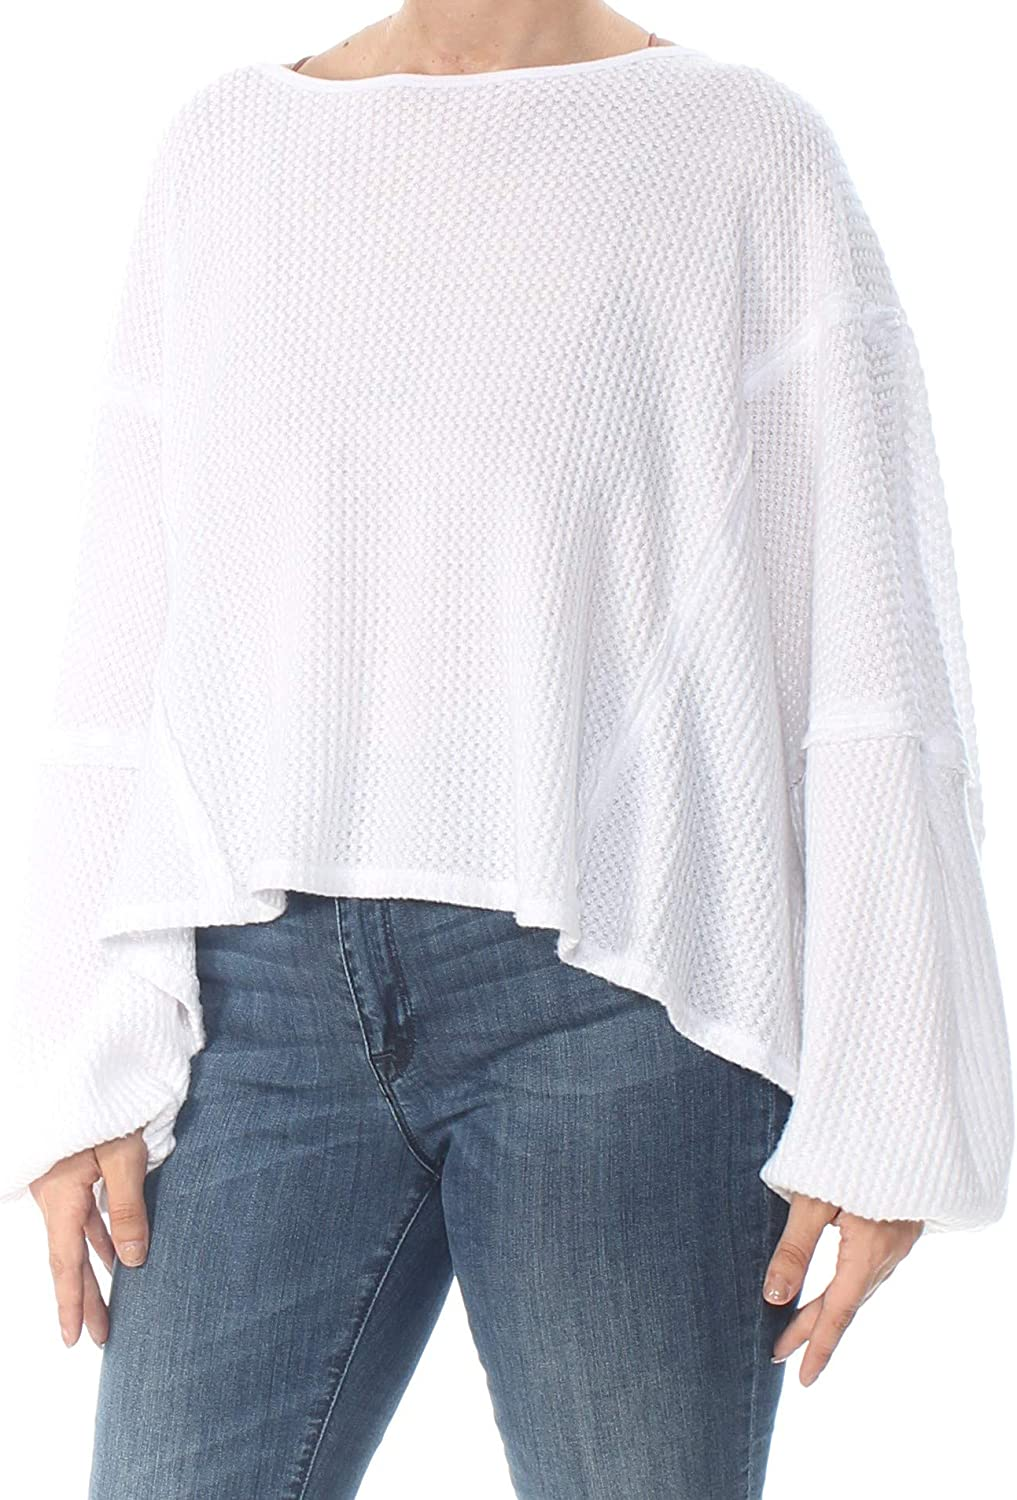 Free People Women's Lover Me Thermal Sweater